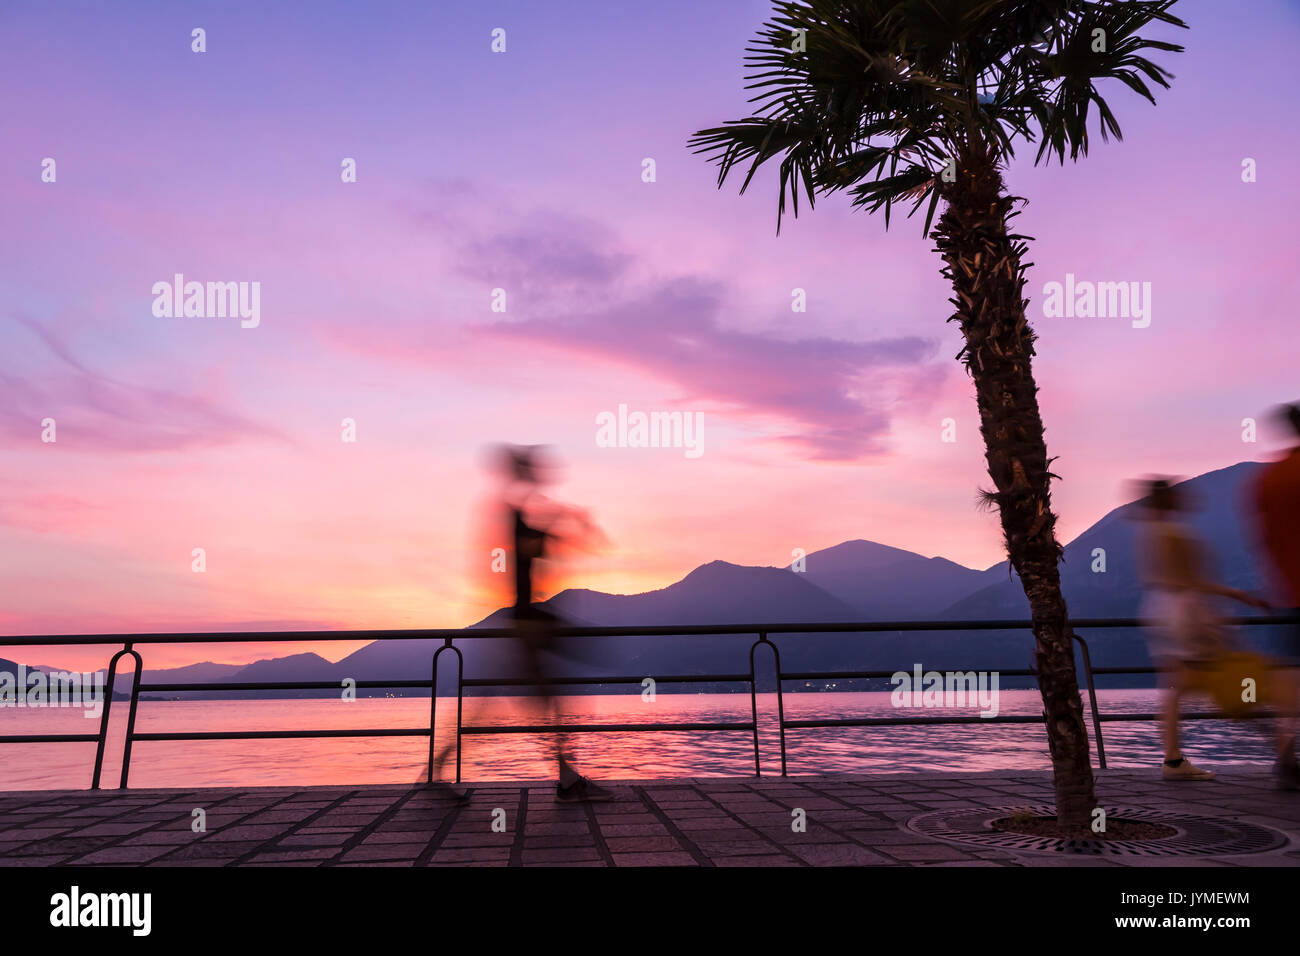 Picturesque foggy sunset at Iseo lake, Lombardy, Italy. Silhouettes of people walking on promenade street in Iseo city - Stock Image